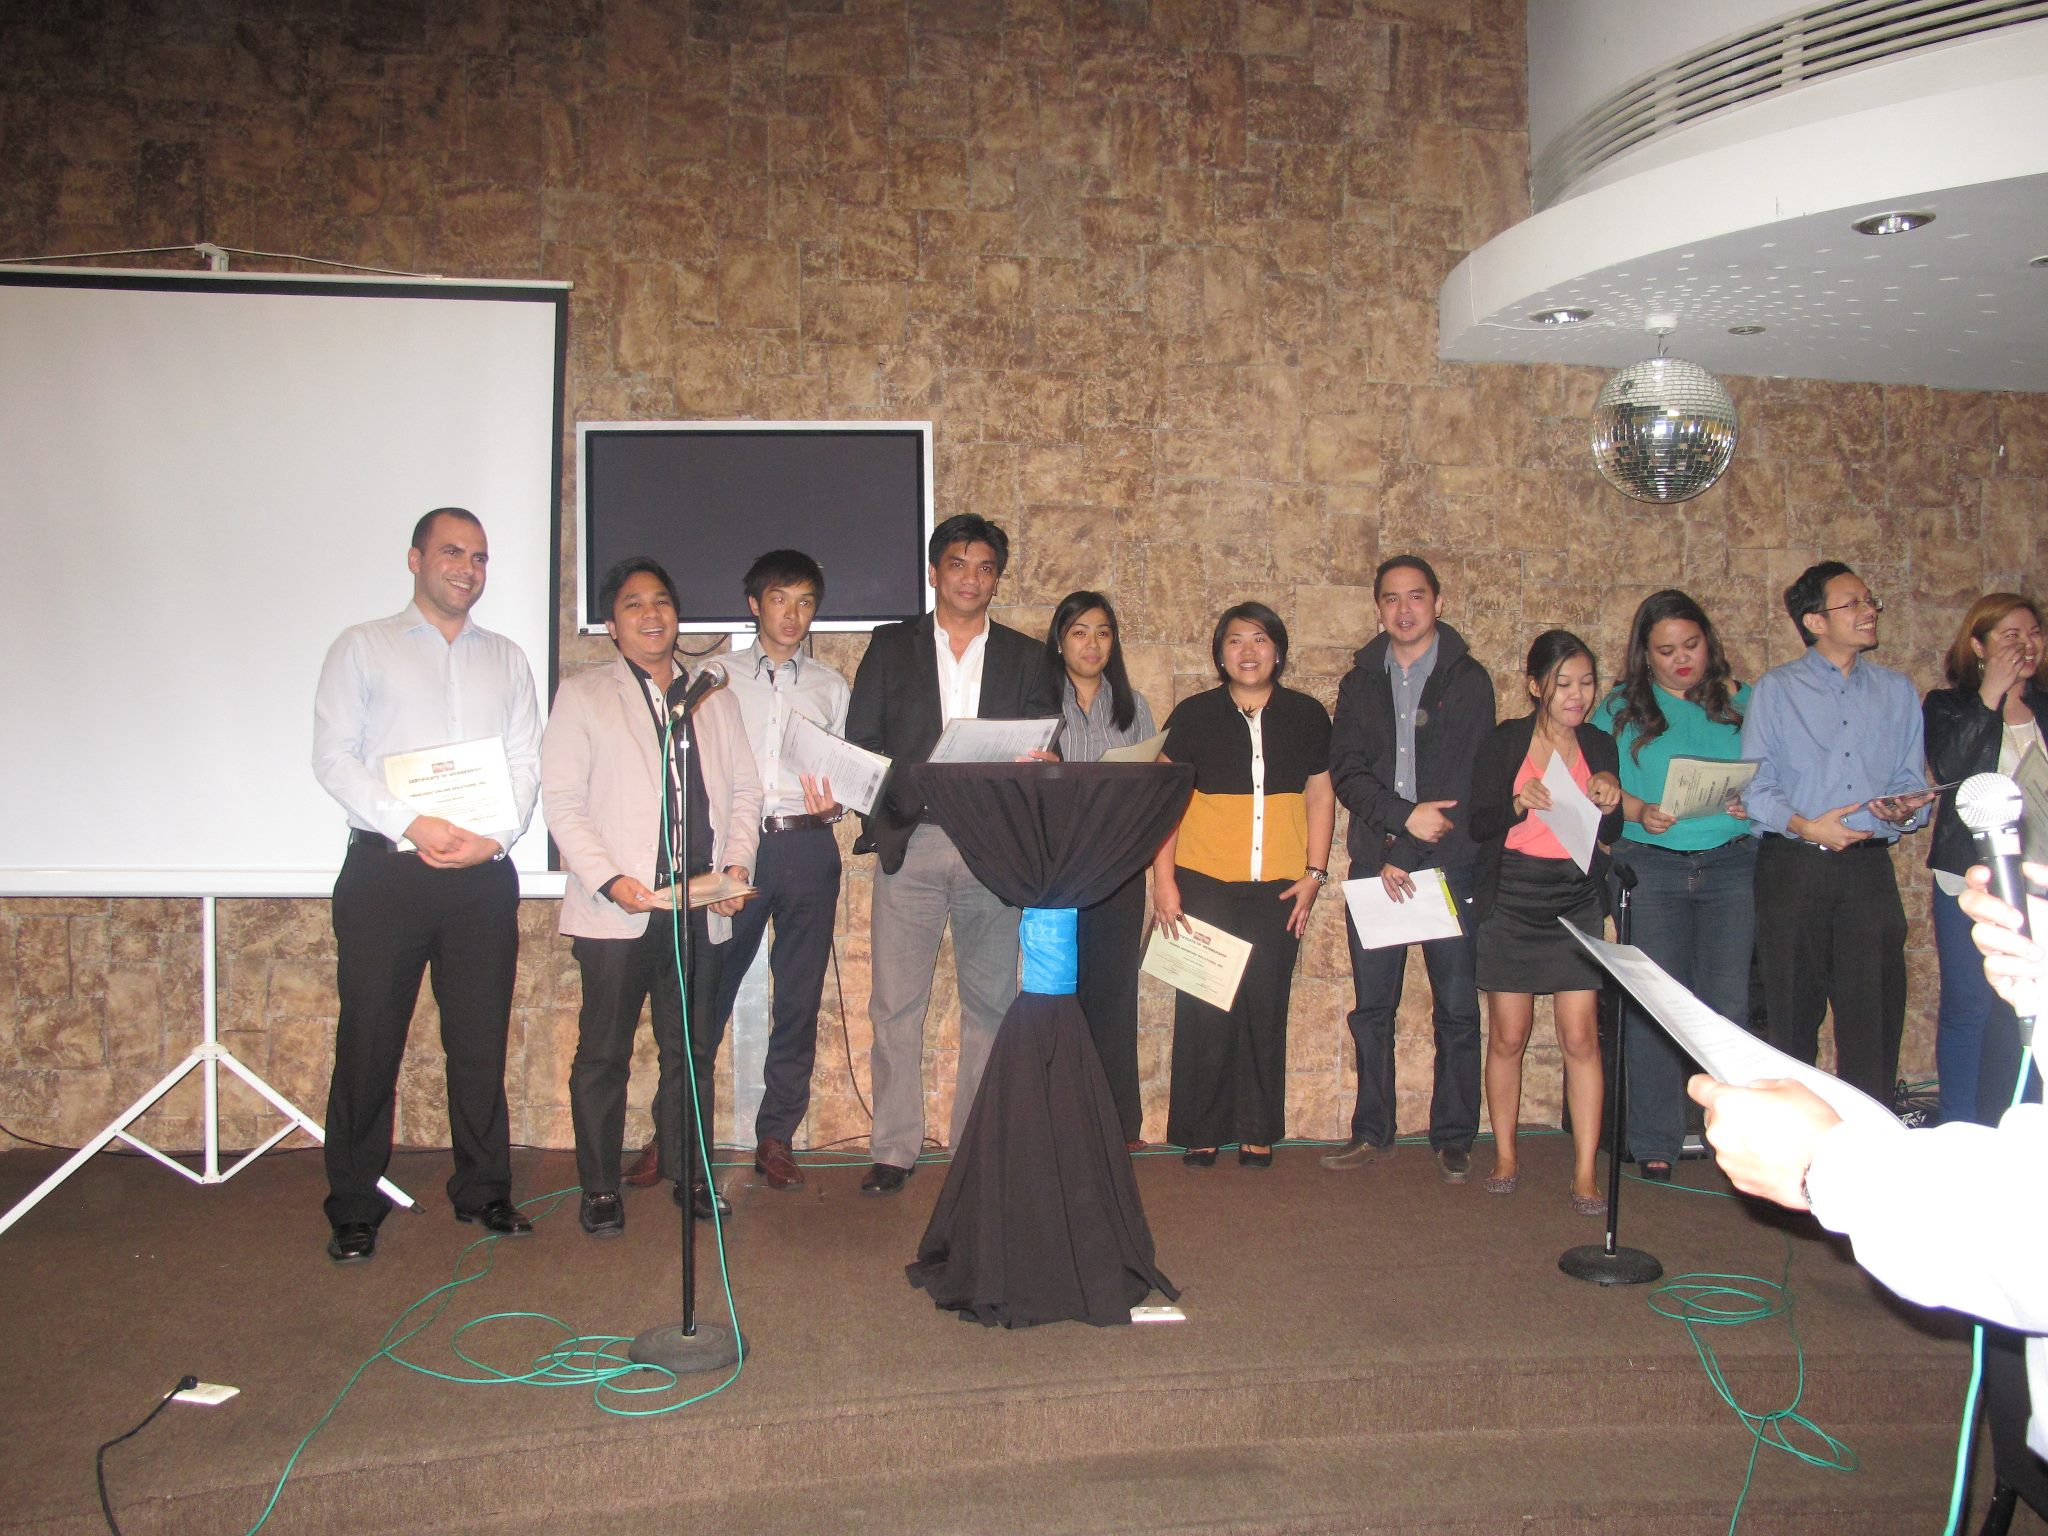 IMMAP General Membership Meeting - New Members